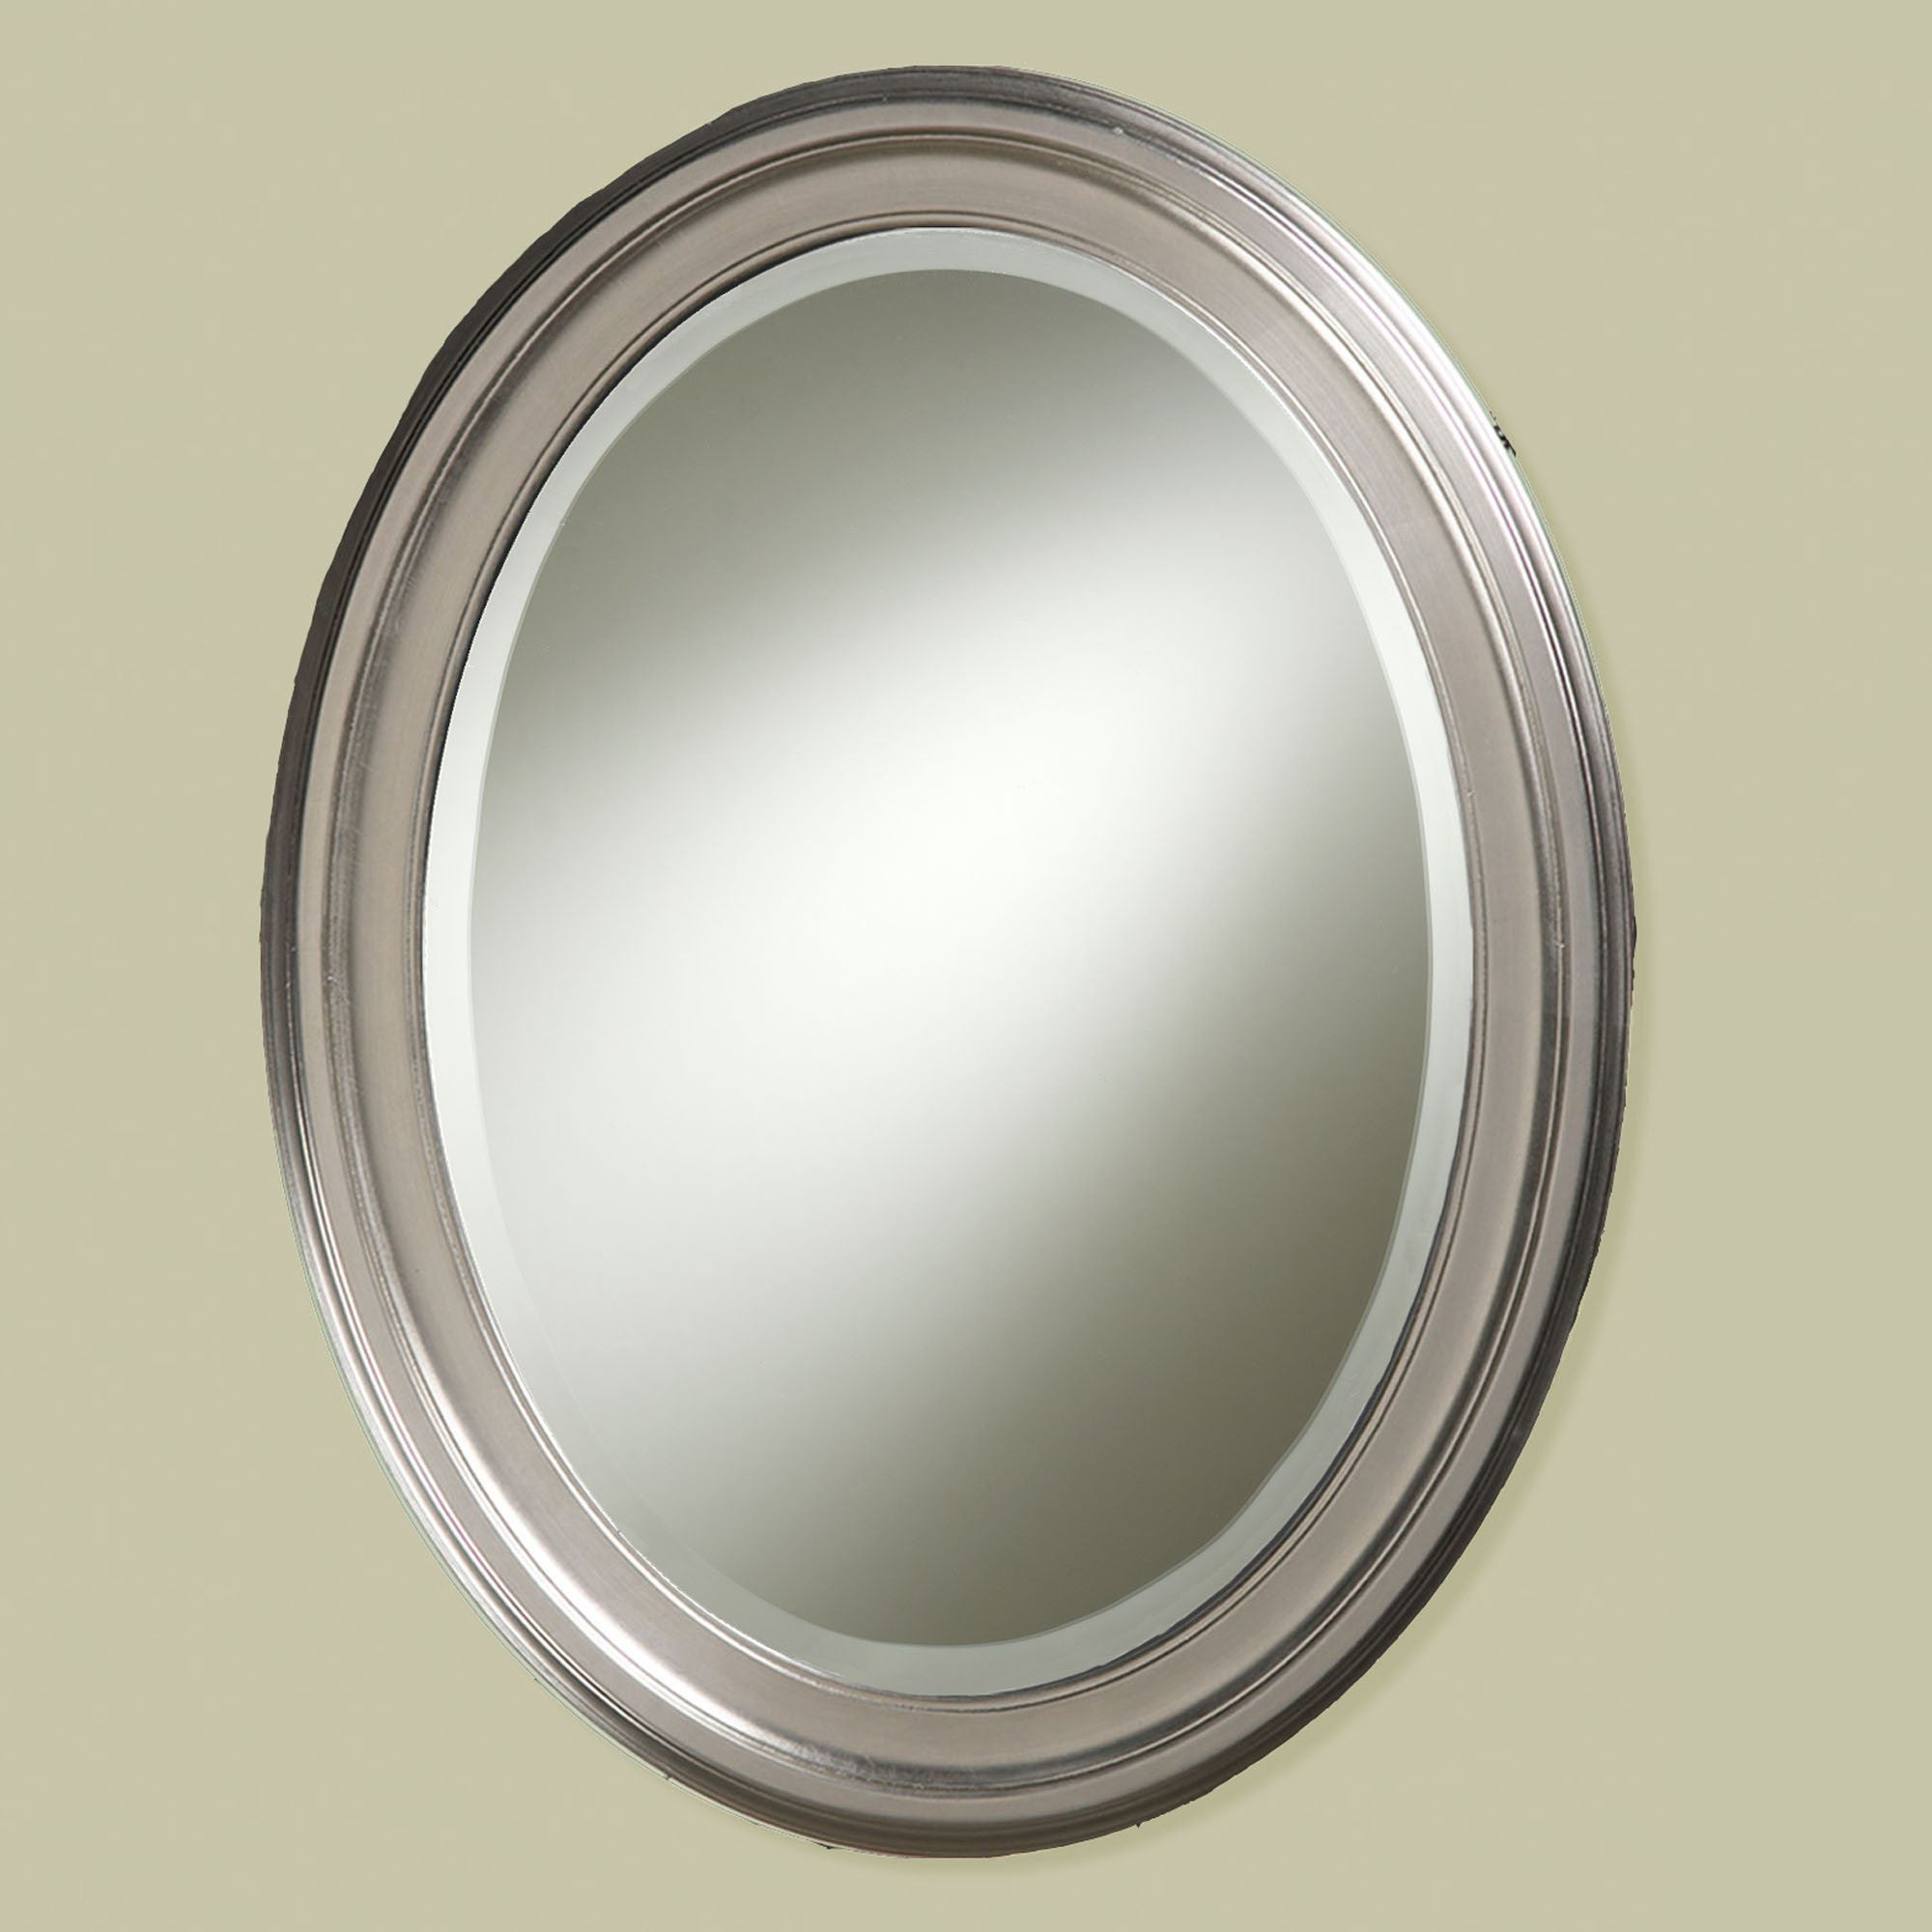 Suddenly Brushed Nickel Wall Mirror Loree Fini #16196 Within Hogge Modern Brushed Nickel Large Frame Wall Mirrors (Image 20 of 20)